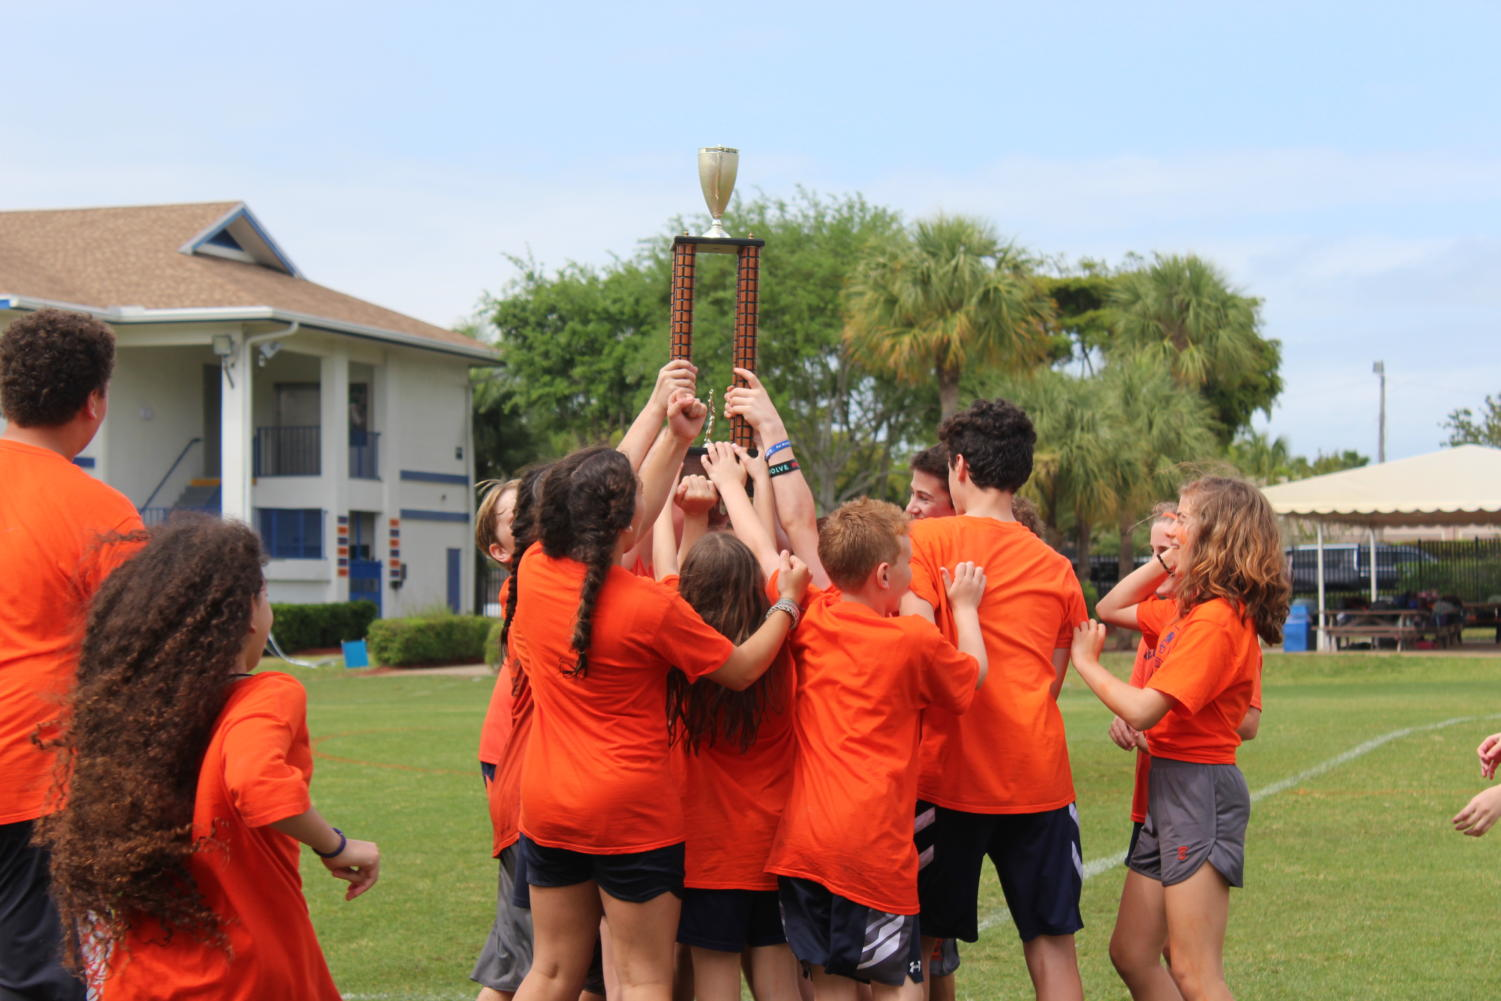 The orange team celebrate its title on Kennerly Field with the trophy after Coach Harbeck announced them winners for the second year in a row.